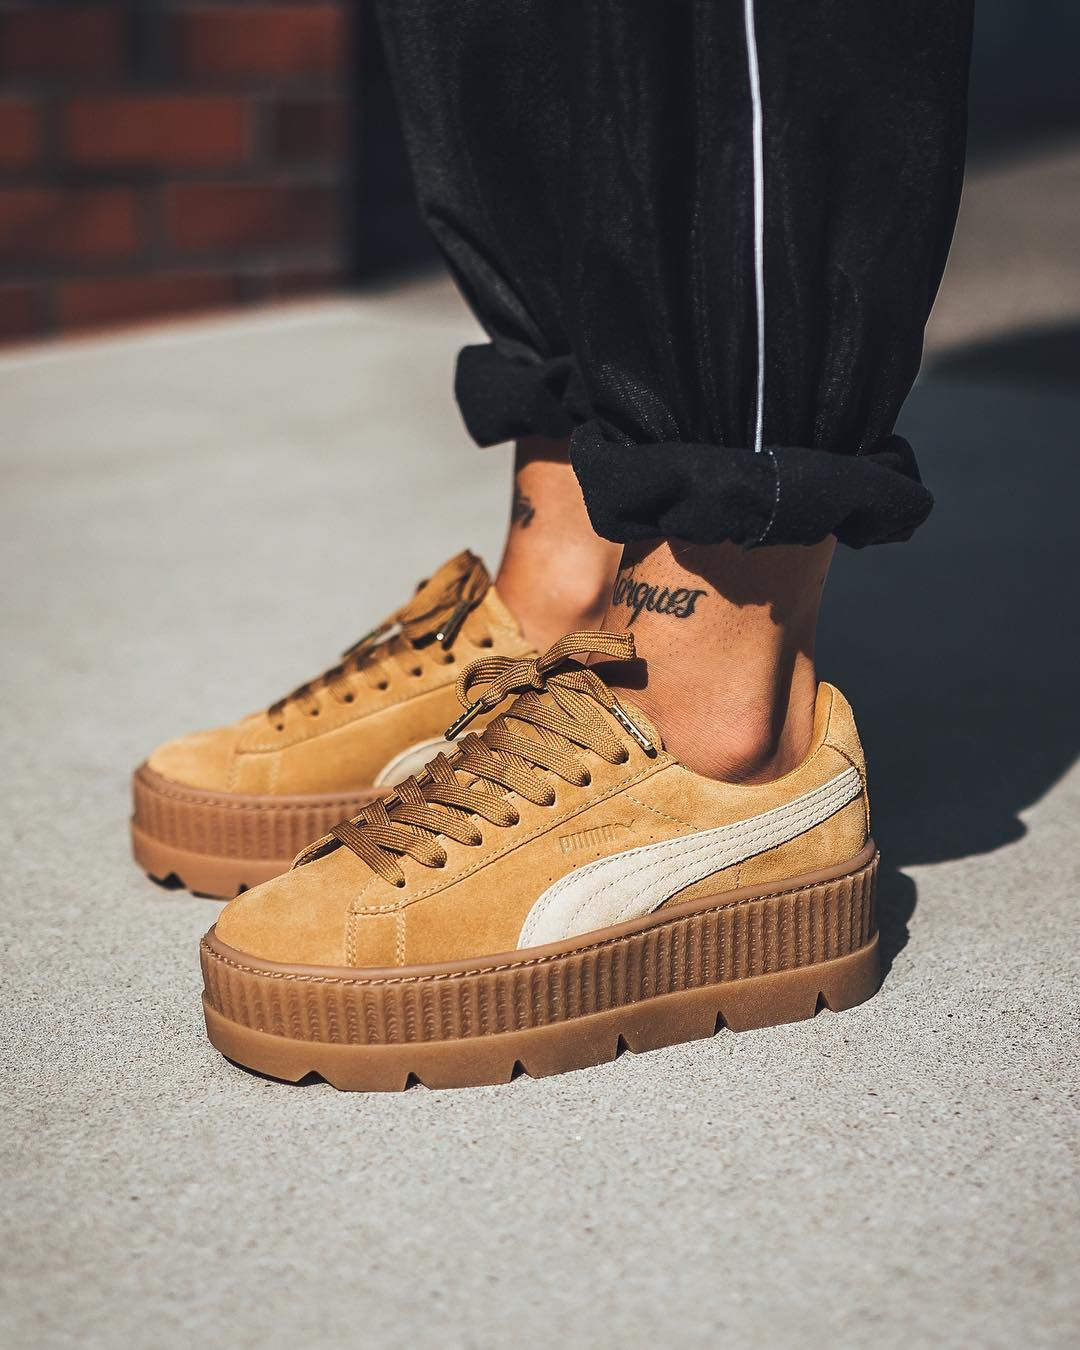 pretty nice f03e4 b40c1 Fenty By Rihanna x Puma Cleated Creeper Suede